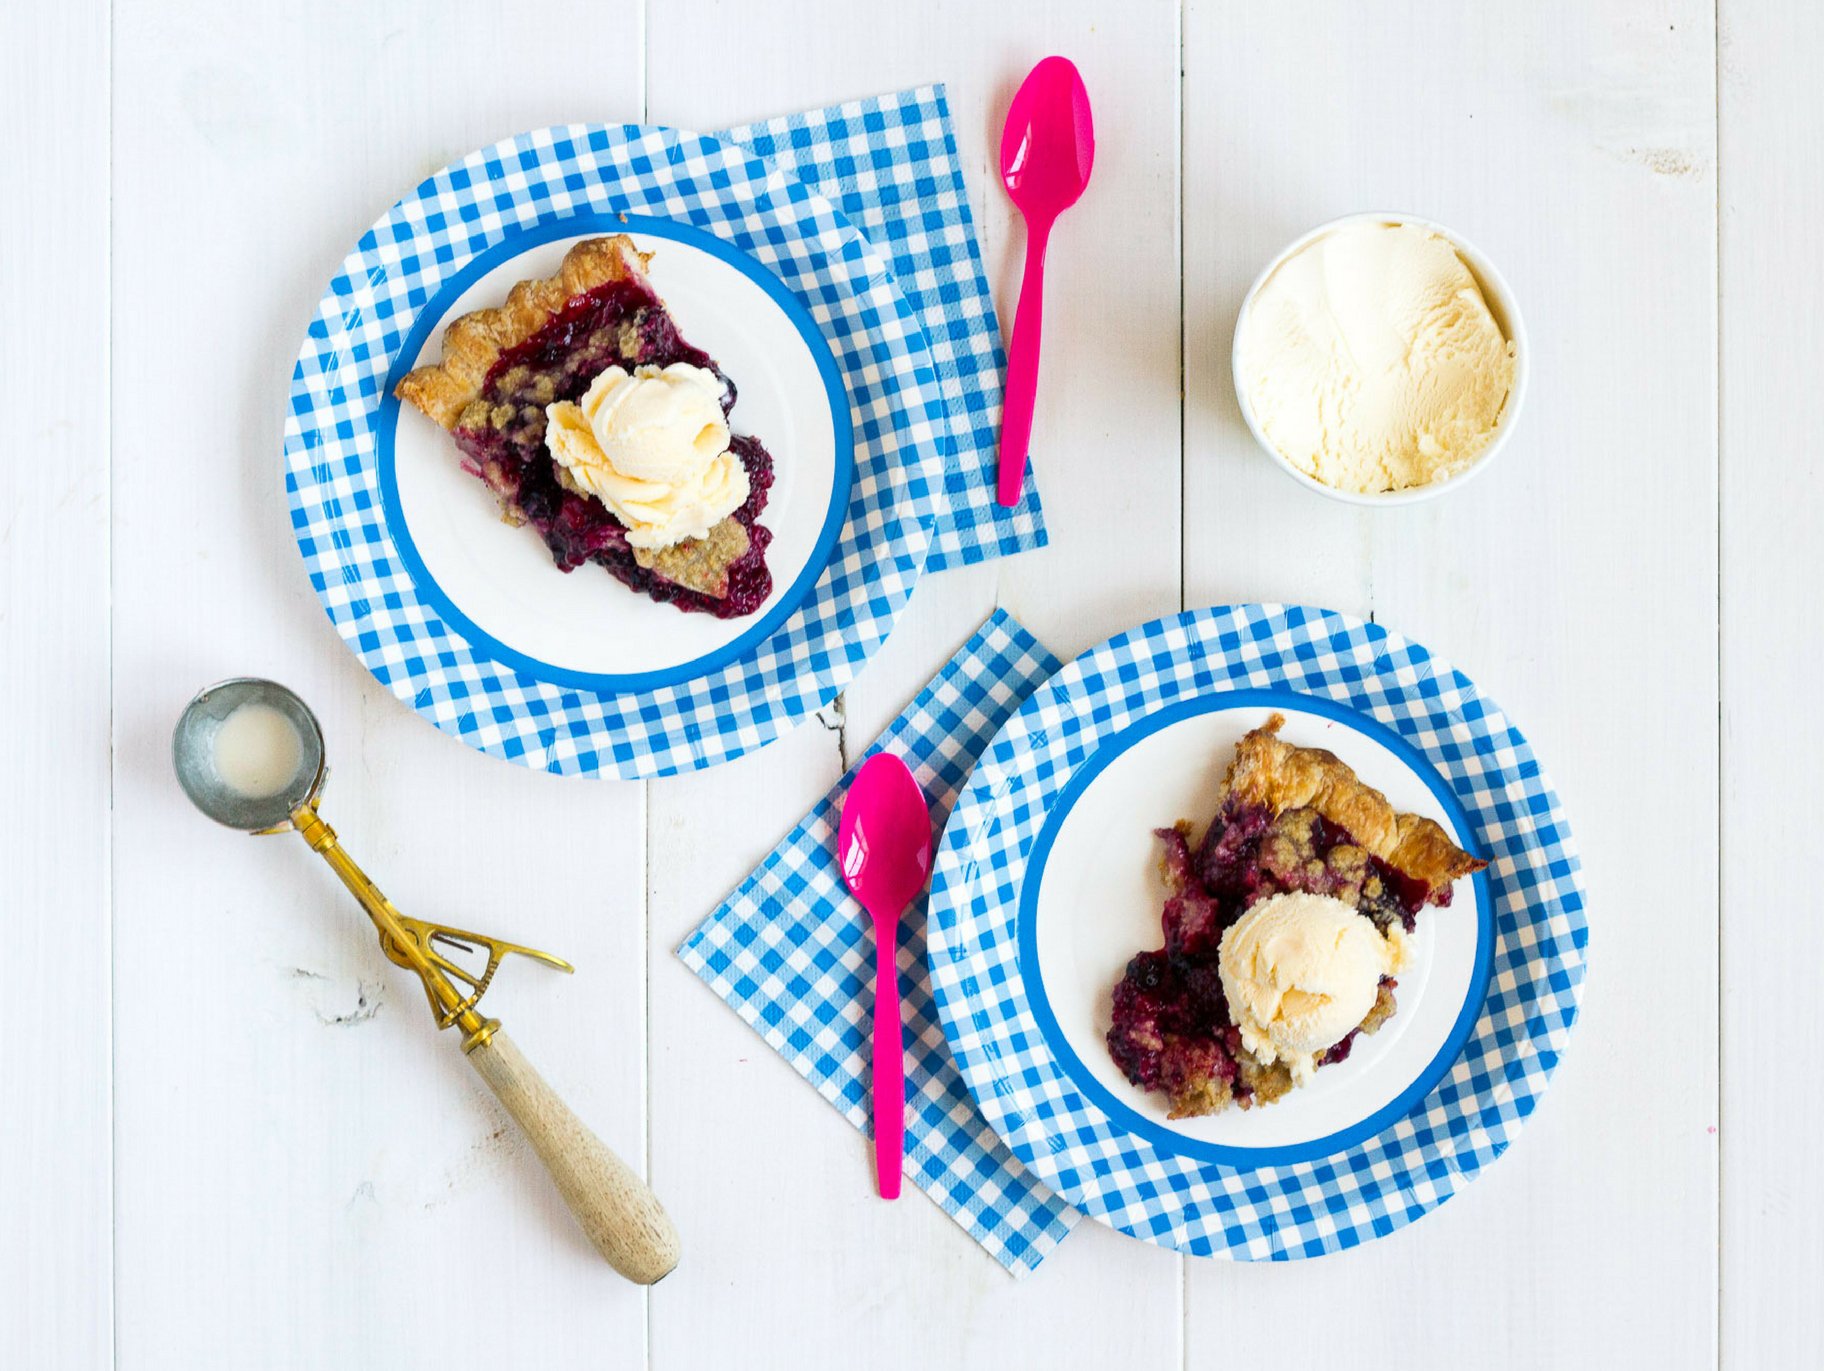 Make this yummy berry pie, filled with fresh summer blackberries, for dessert tonight!